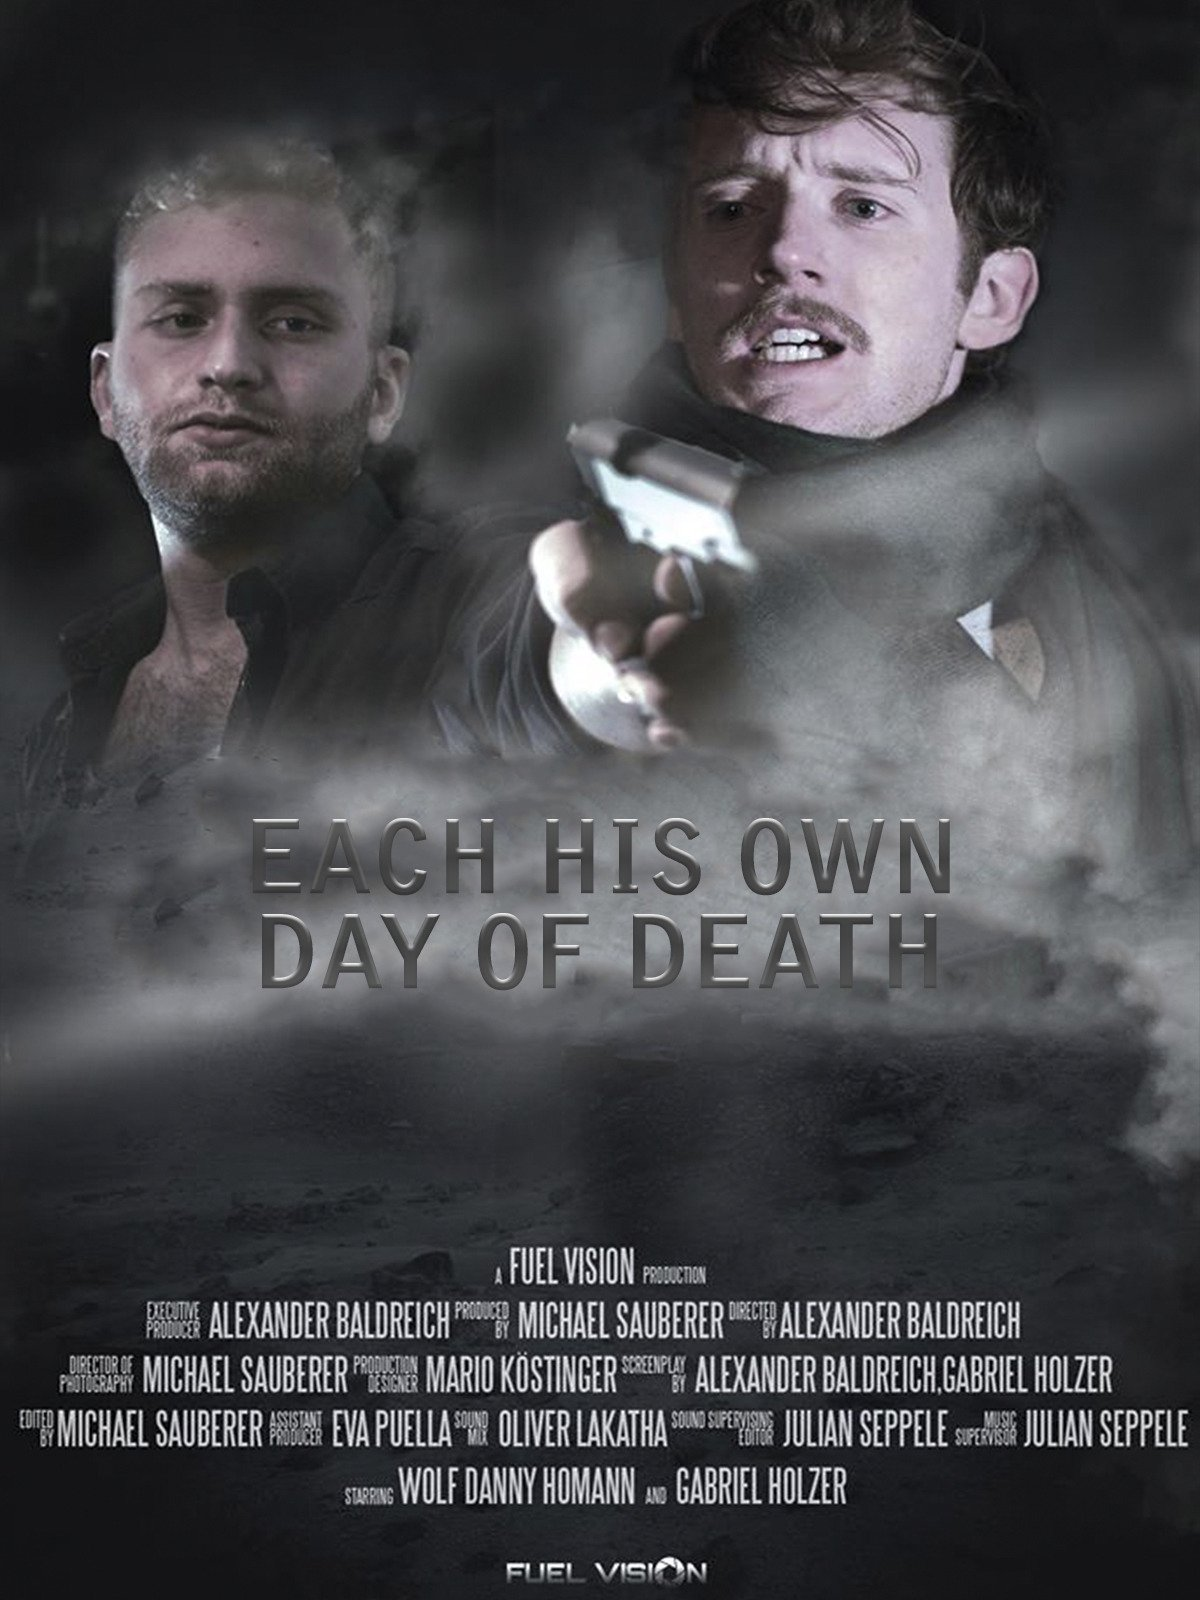 Each his own day of death [eng./OV]